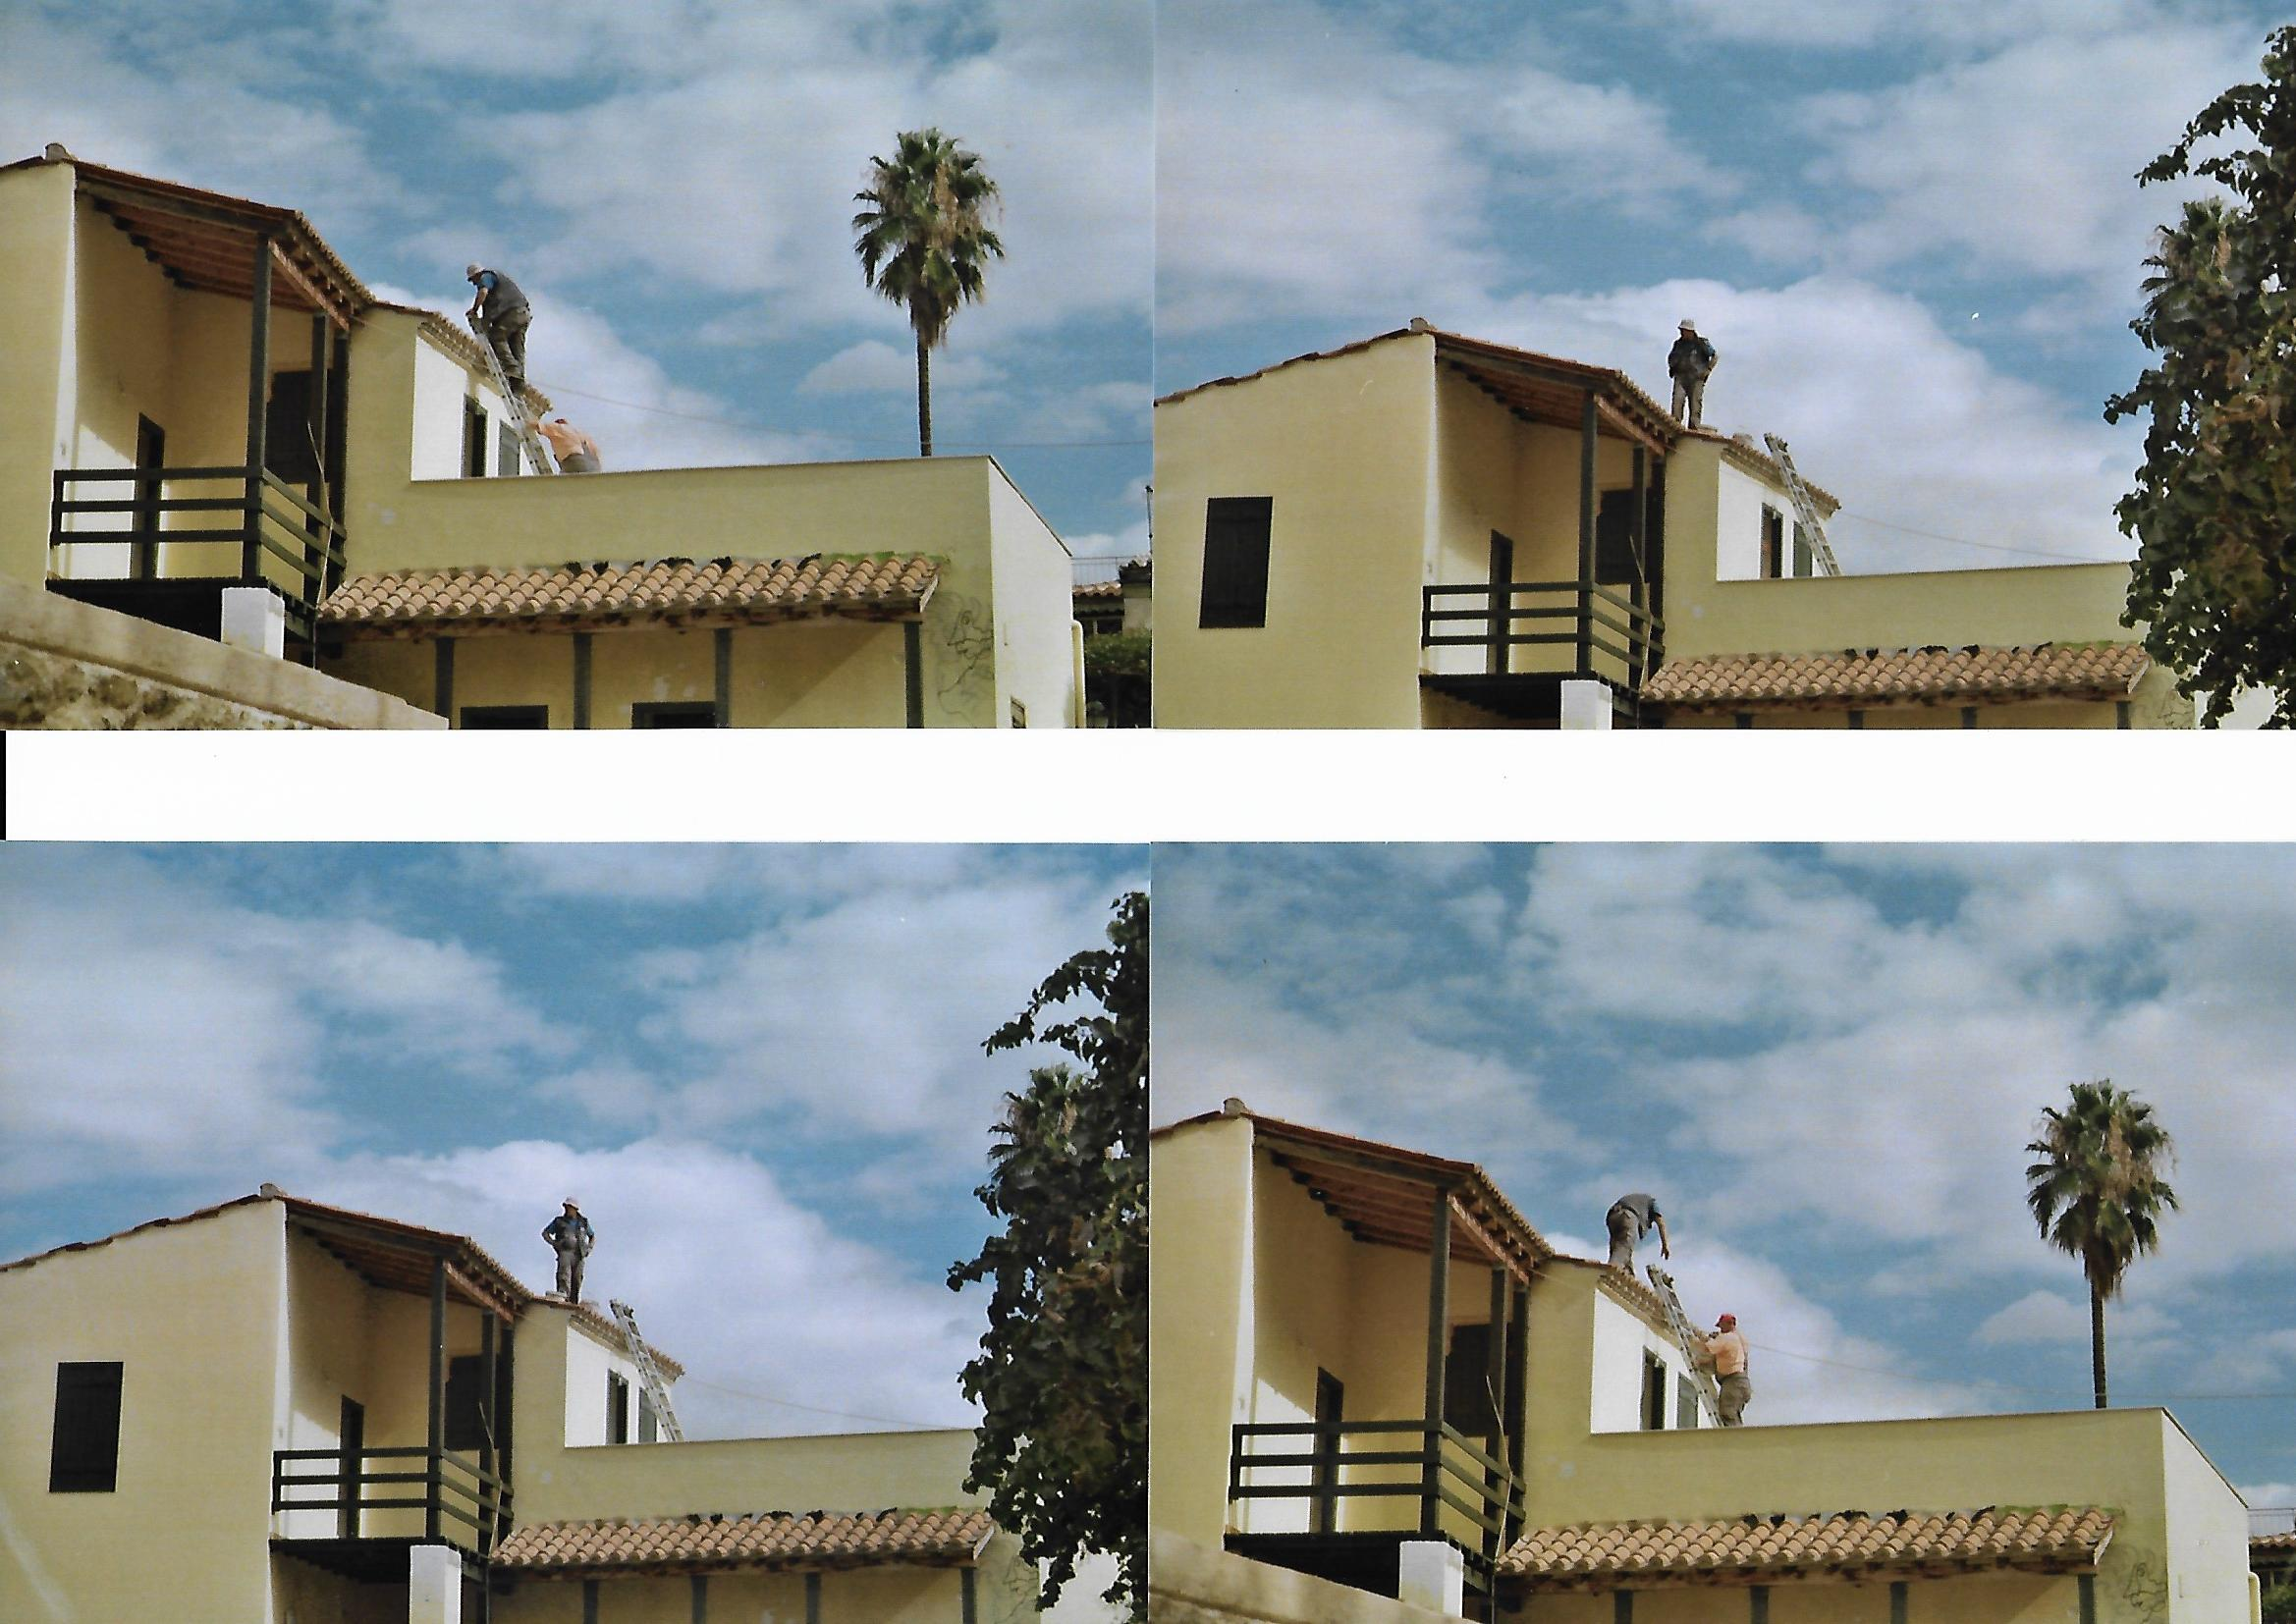 41649 || 5910 || Man on roof || NULL || 8394